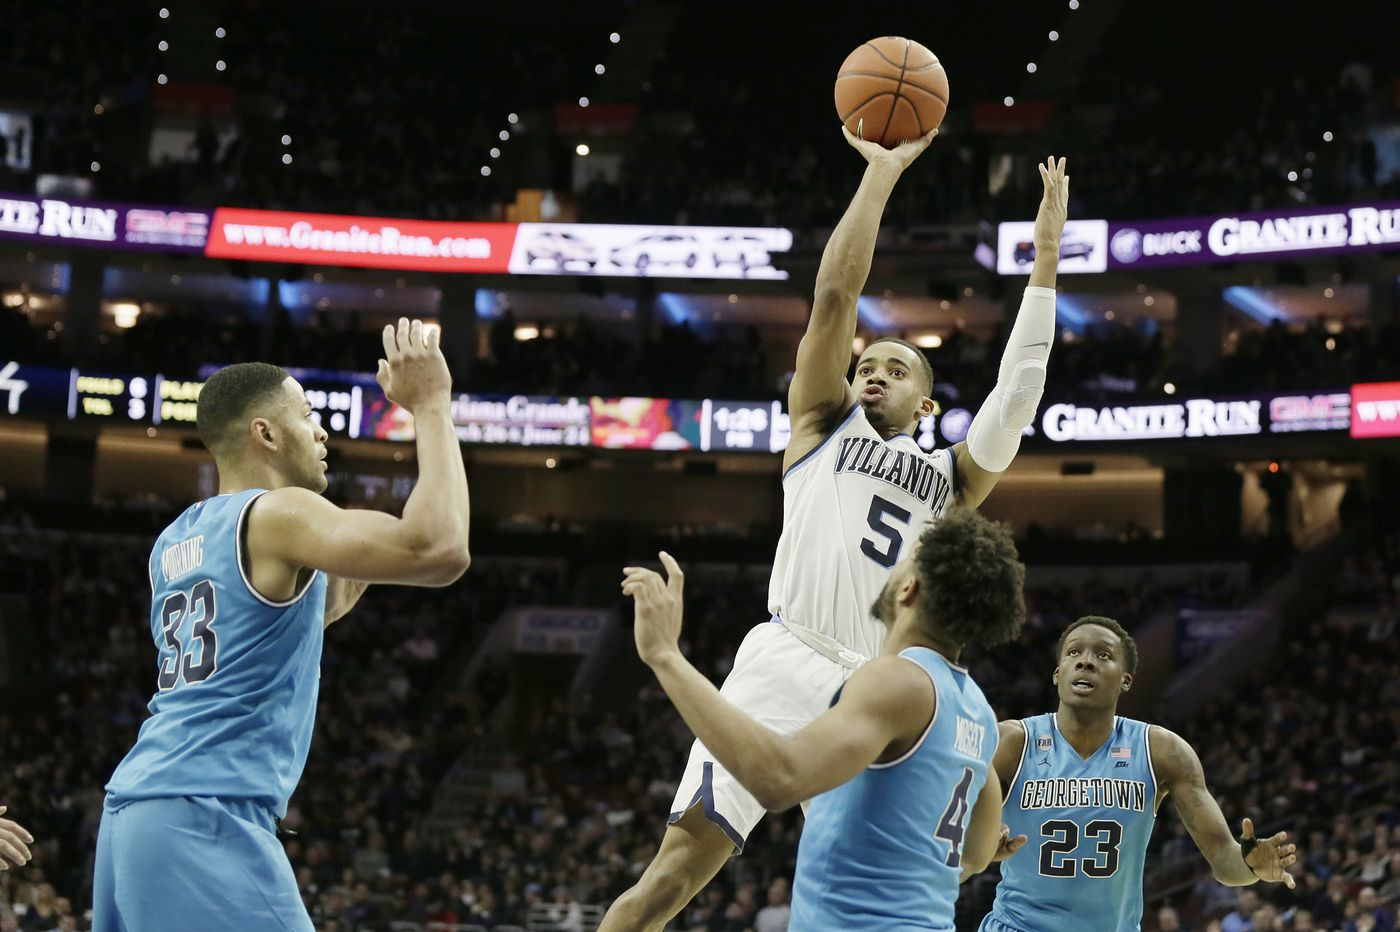 Villanova basketball looking to quickly correct transition defense for Georgetown